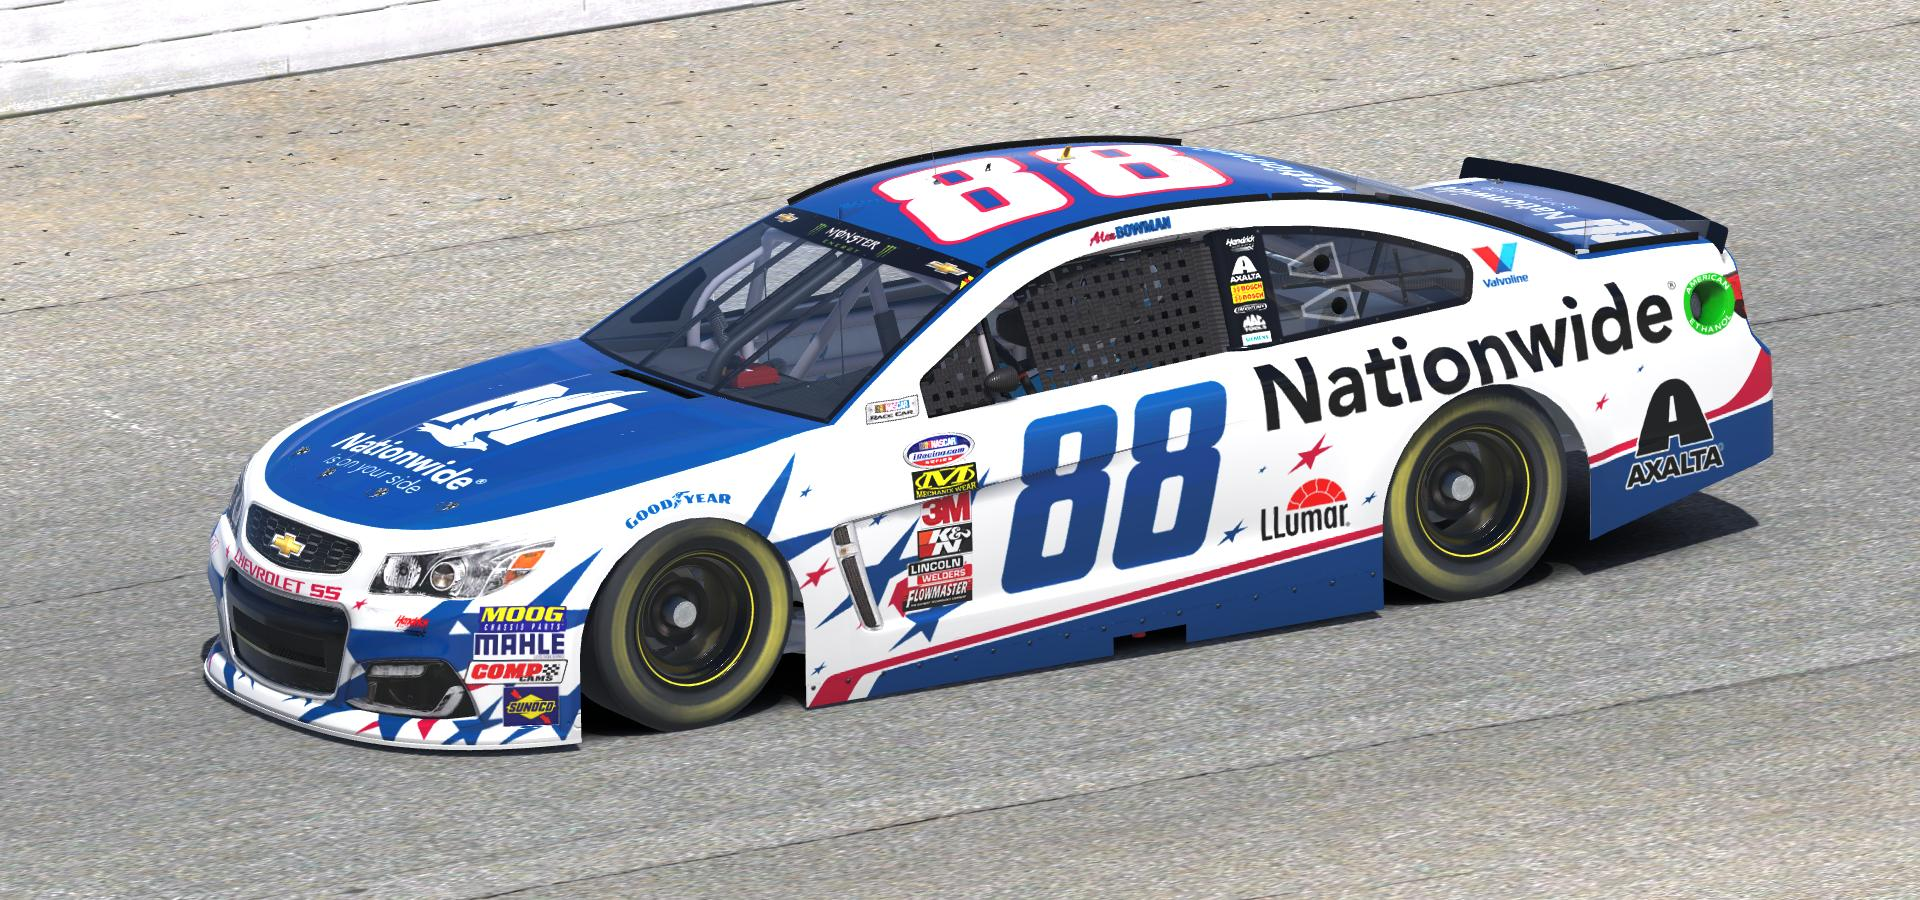 Preview of 2018 Alex Bowman Nationwide Coca Cola 600 Car by Doug DeNise